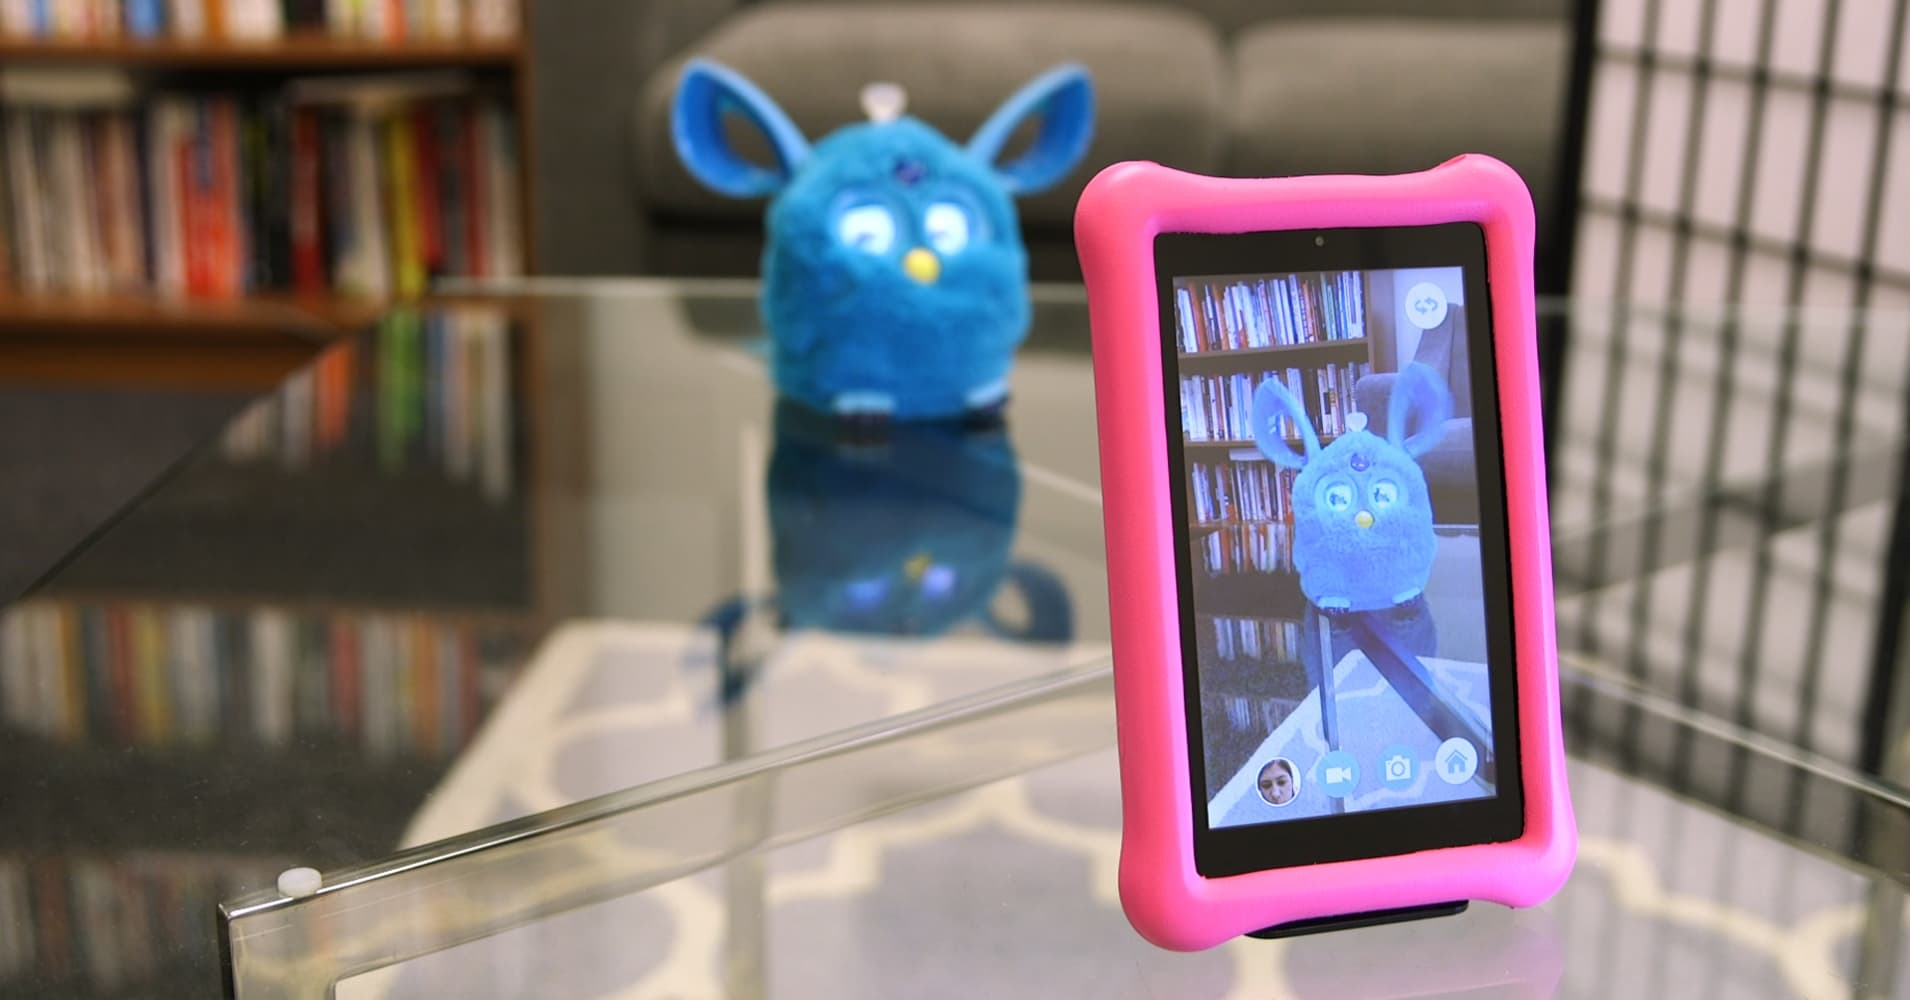 Connected toys privacy risks